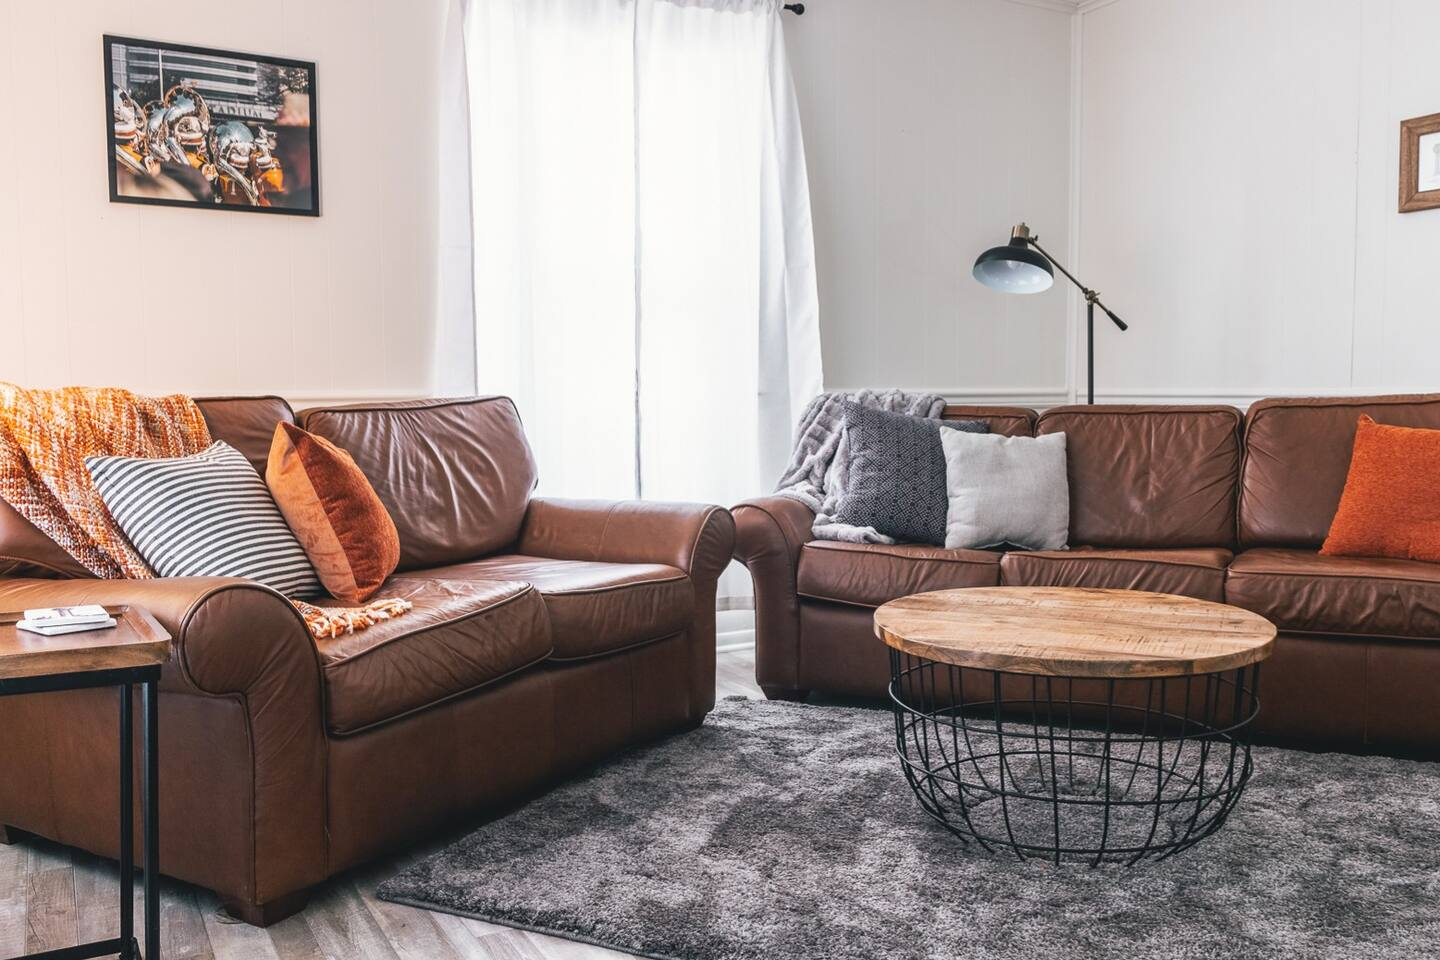 This is the perfect spot to watch the Vols or any other sports team! Cozy couches for the win!